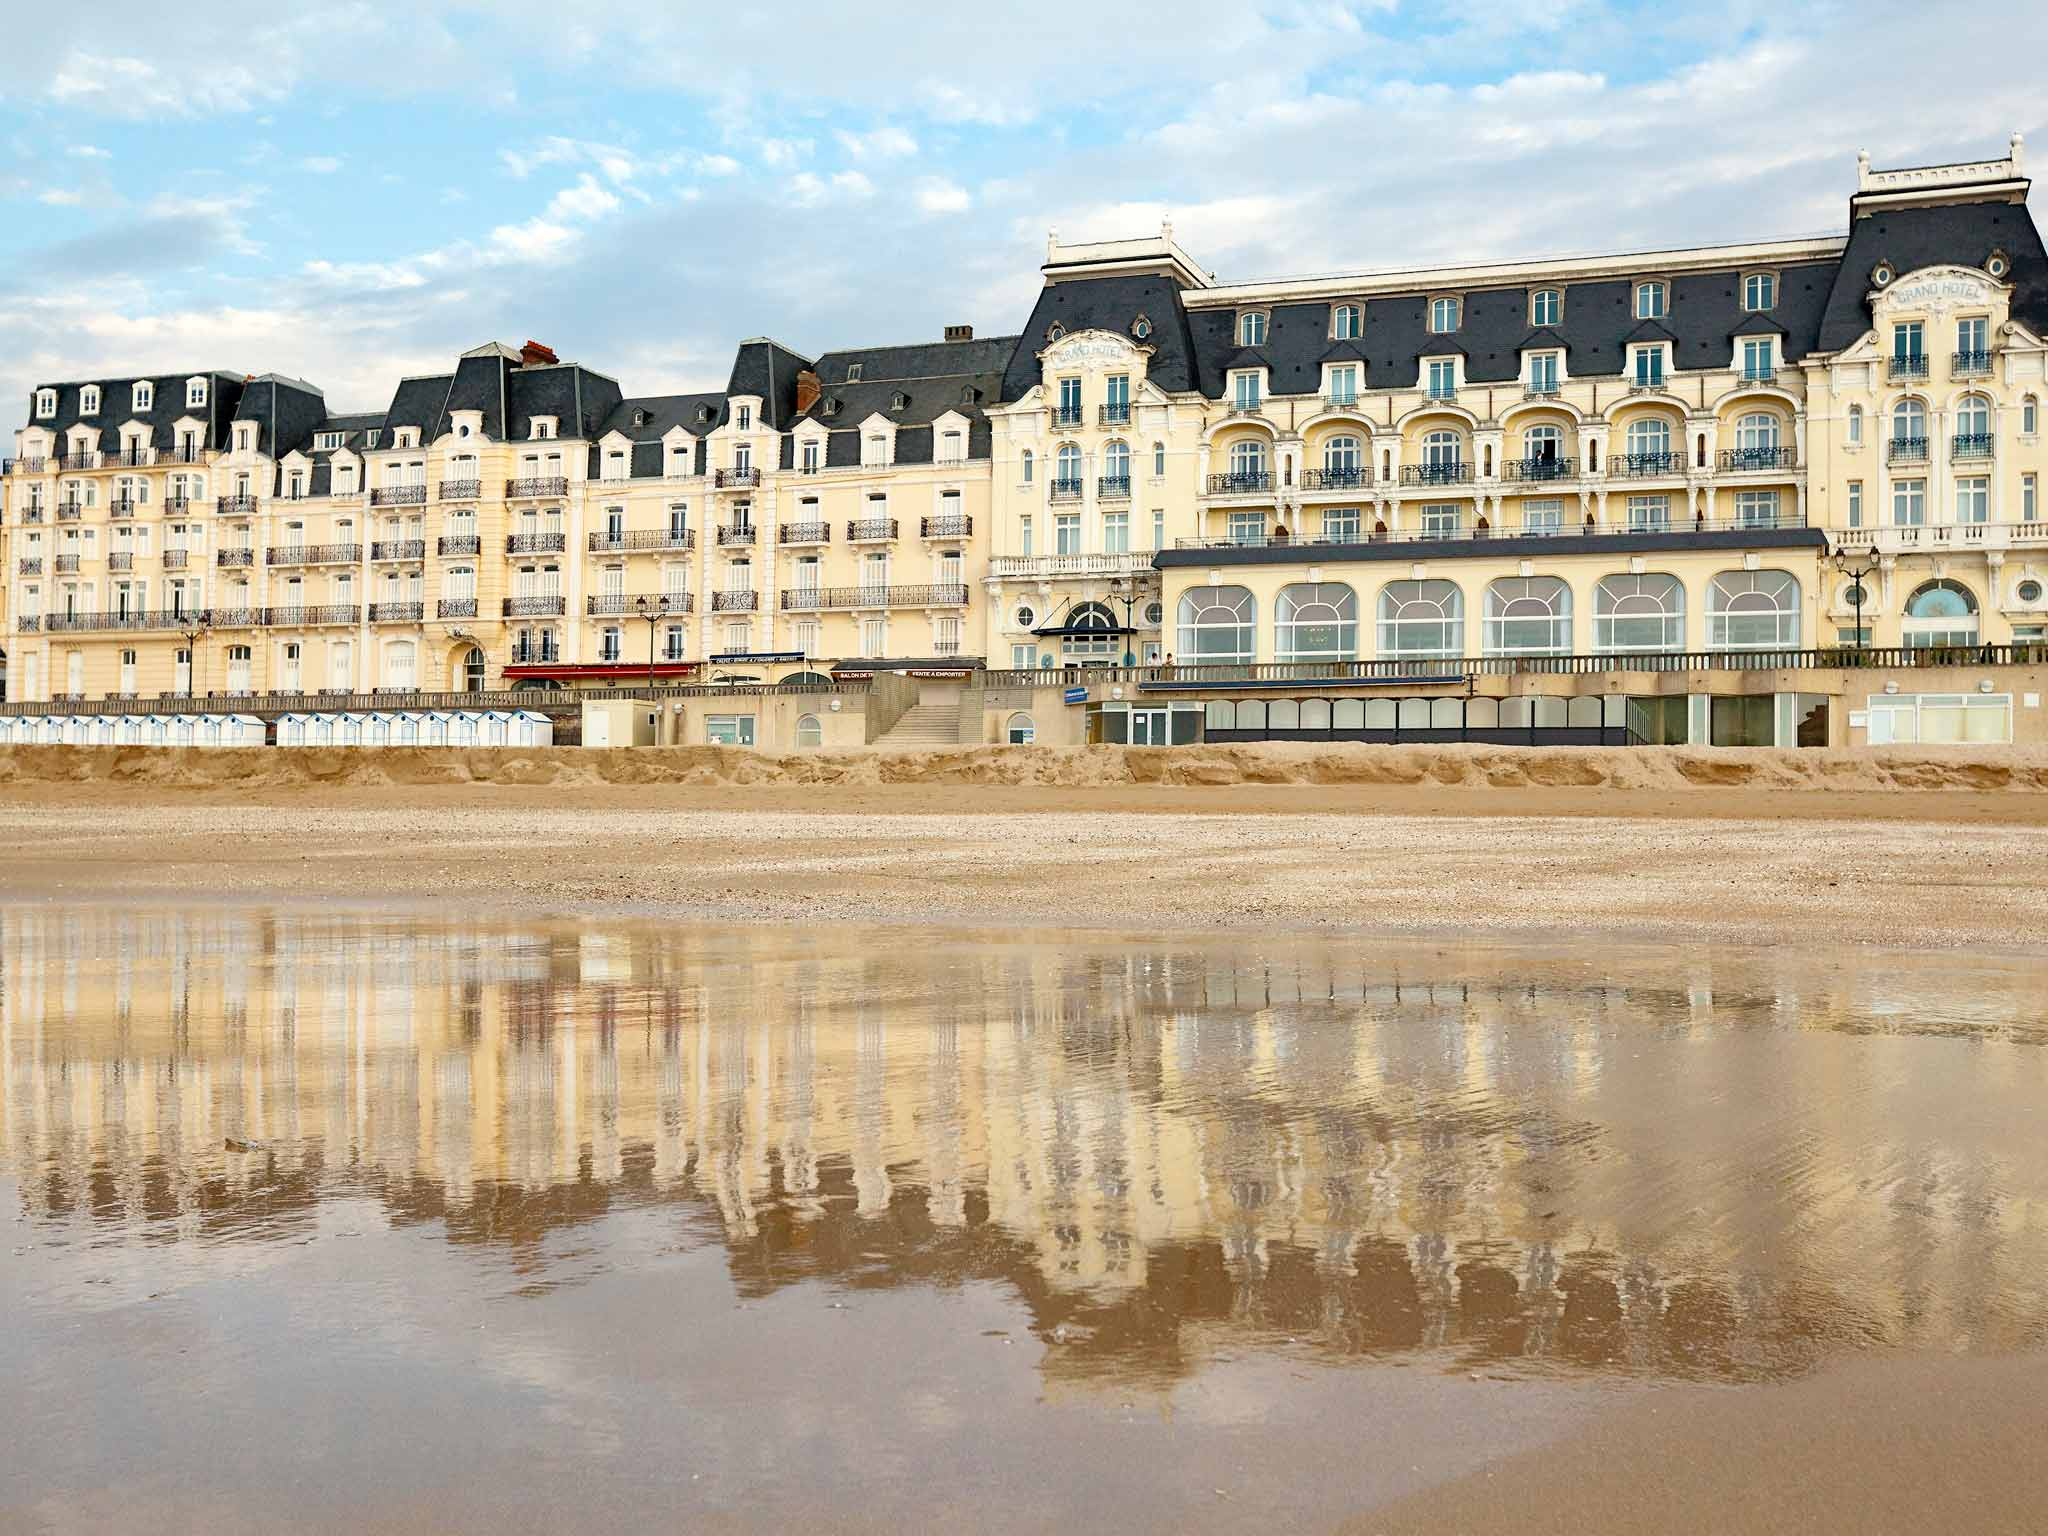 H tel dives sur mer ibis budget cabourg dives sur mer for Chambre 414 grand hotel cabourg